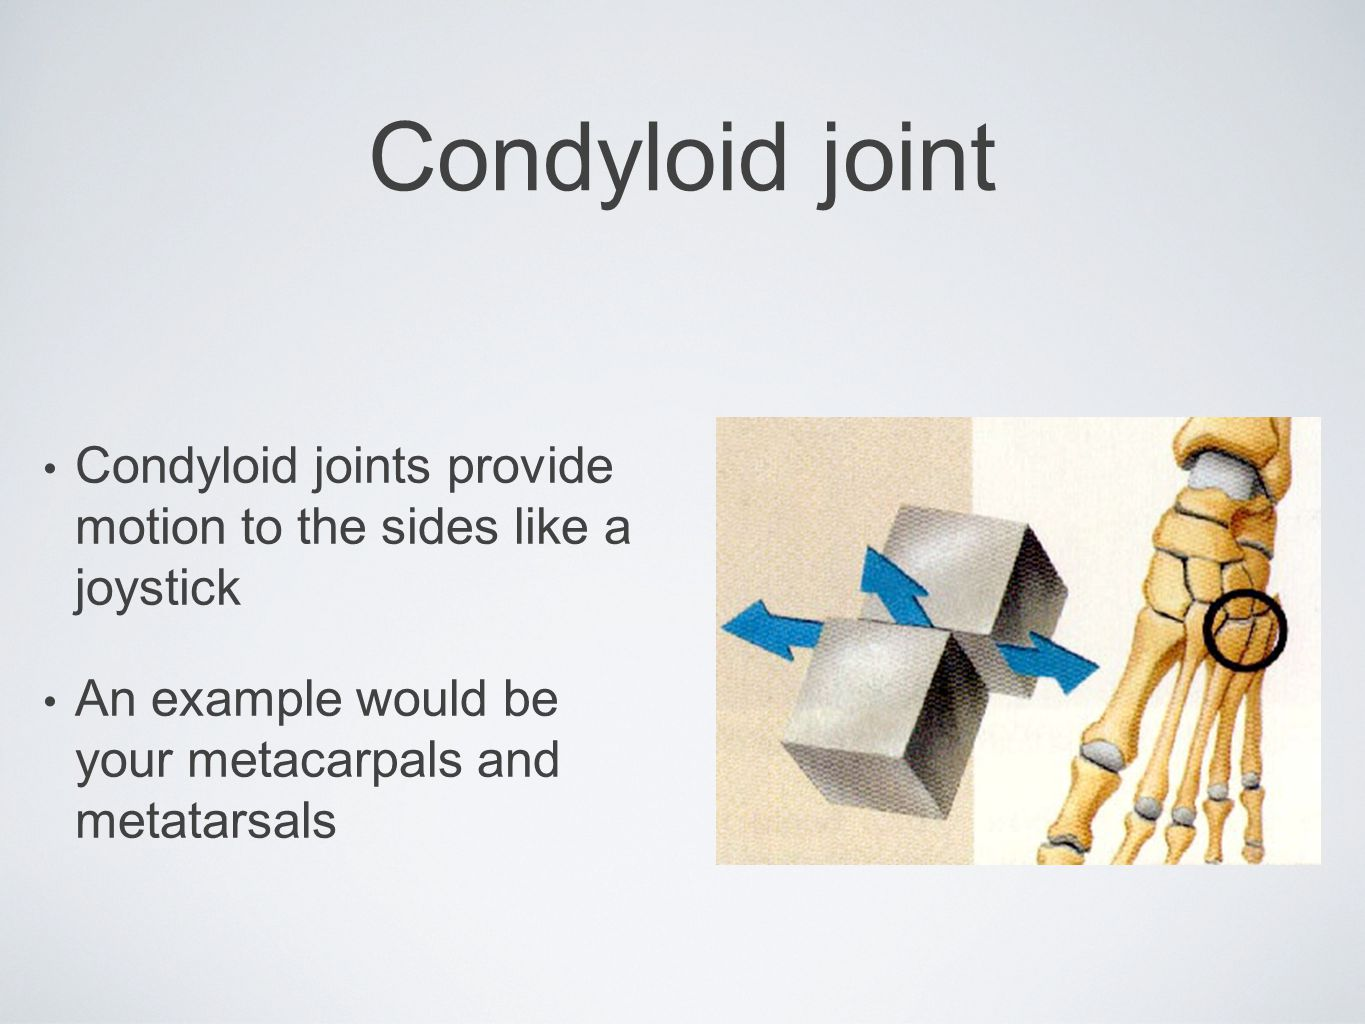 Condyloid joint Condyloid joints provide motion to the sides like a joystick.